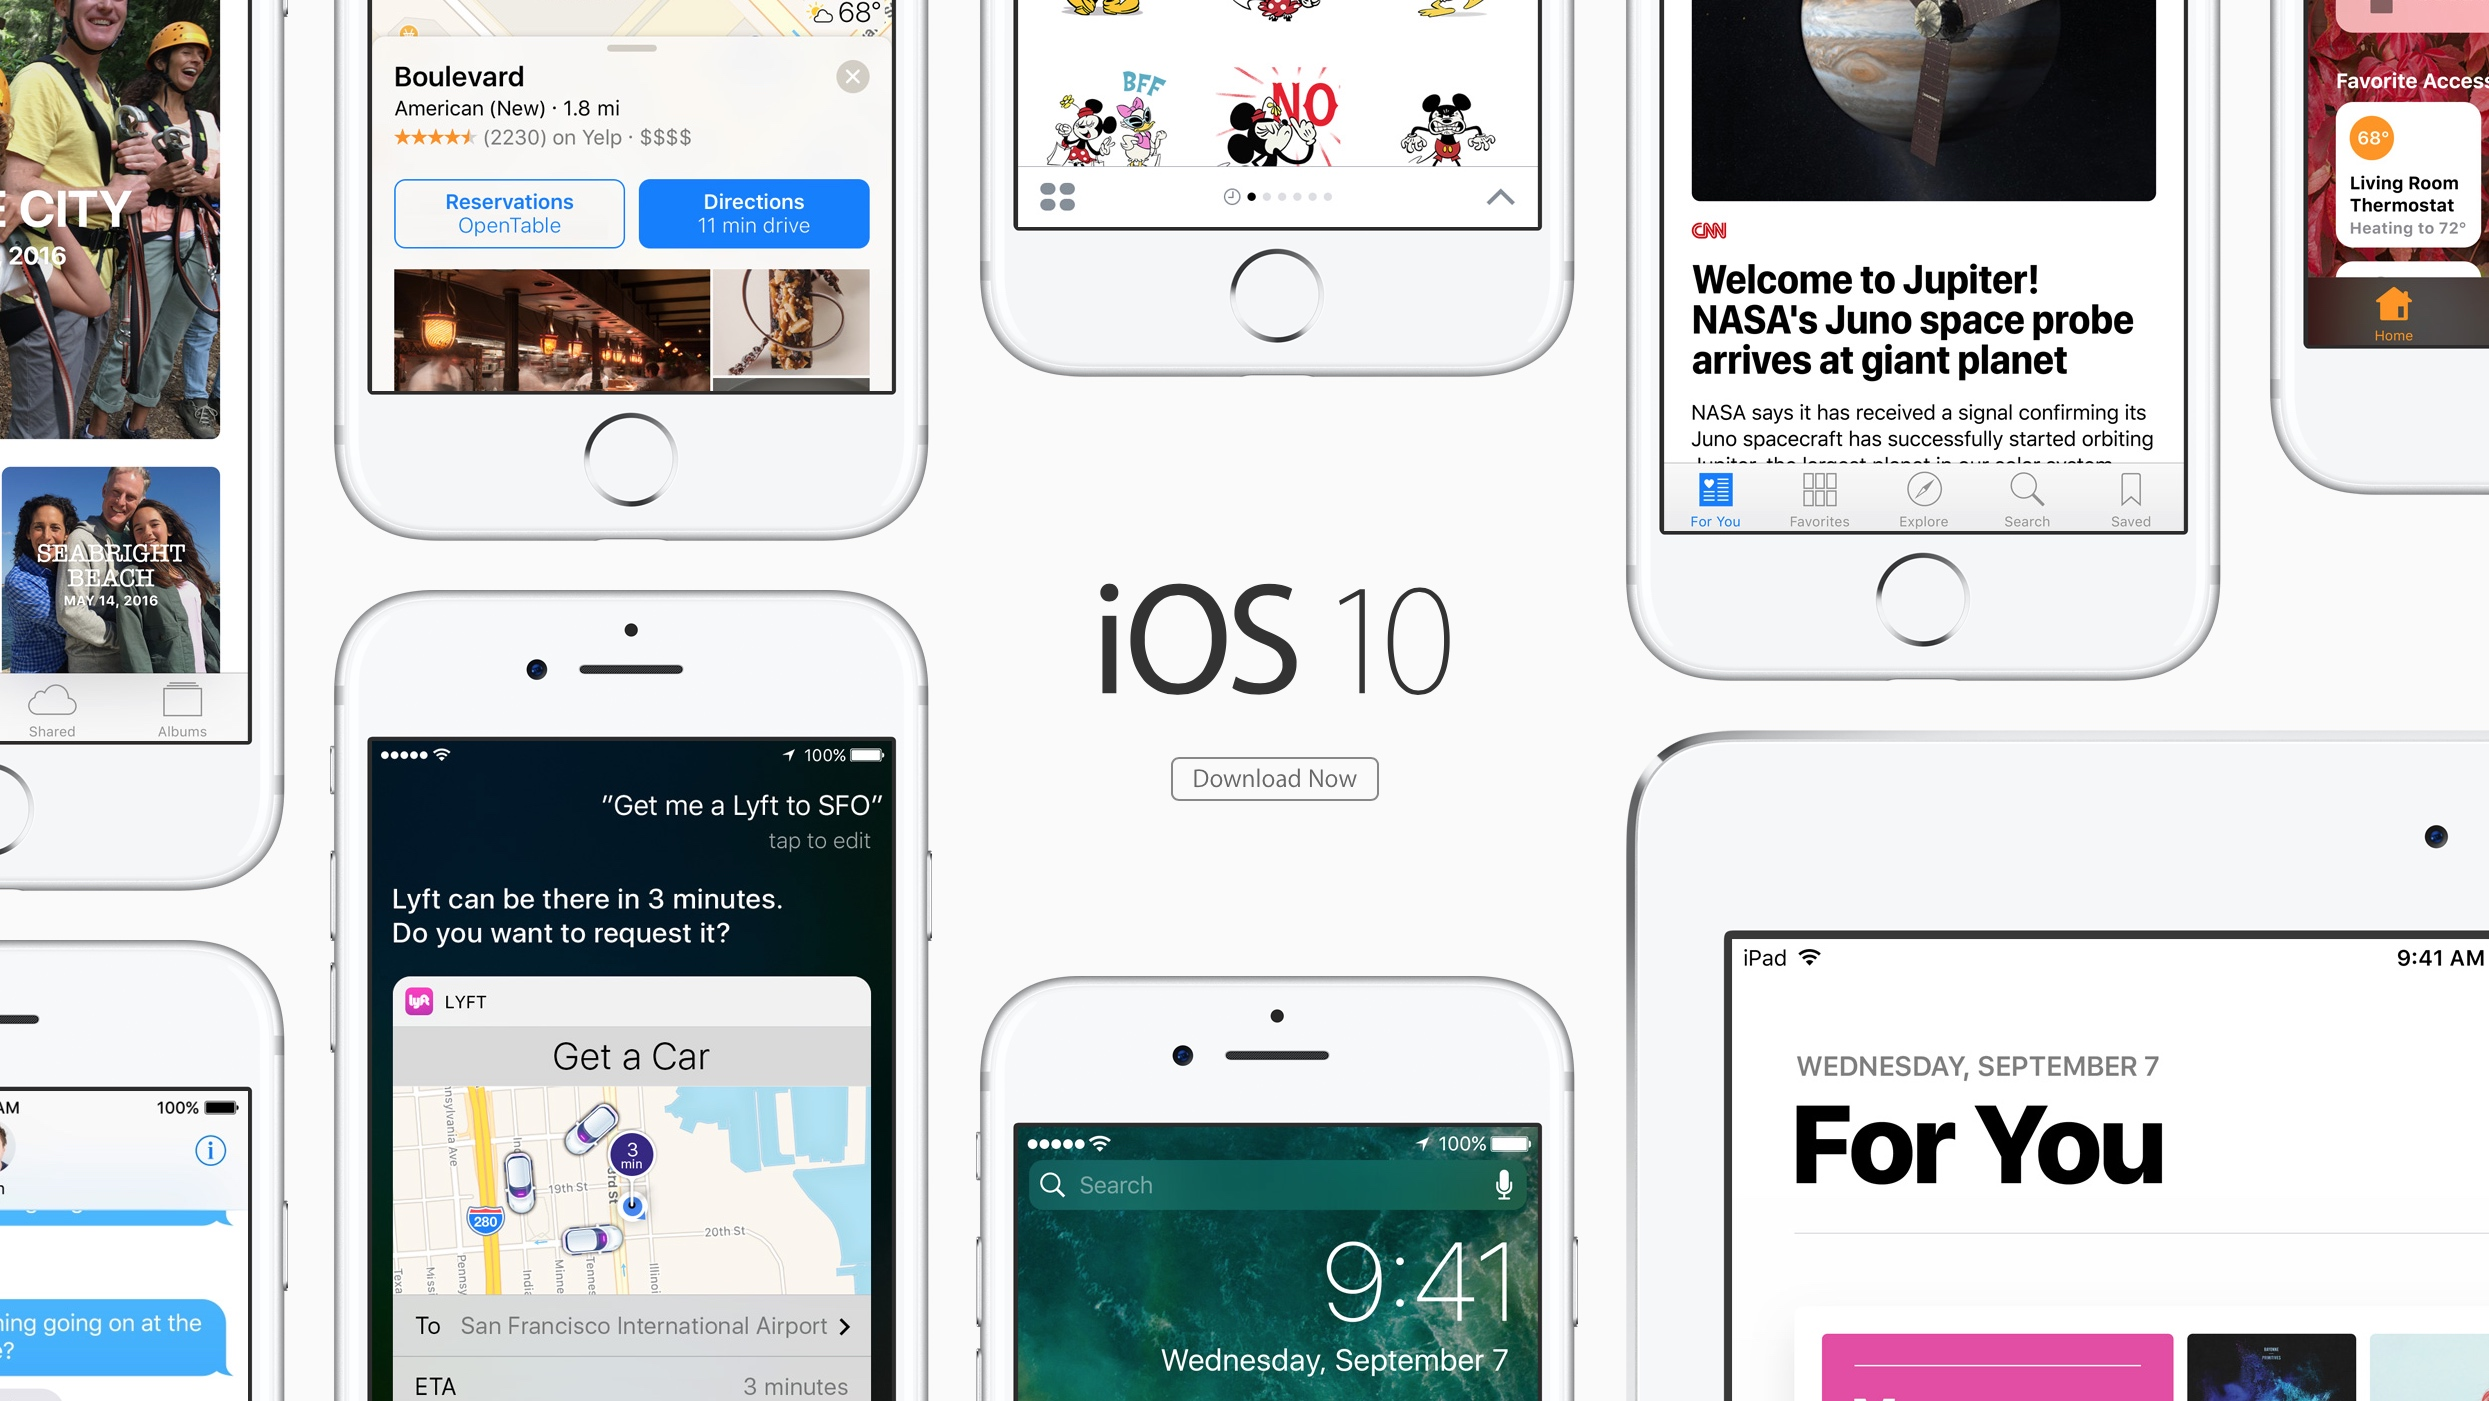 Apple releases iOS 10 for iPhone, iPad and iPod touch to the public